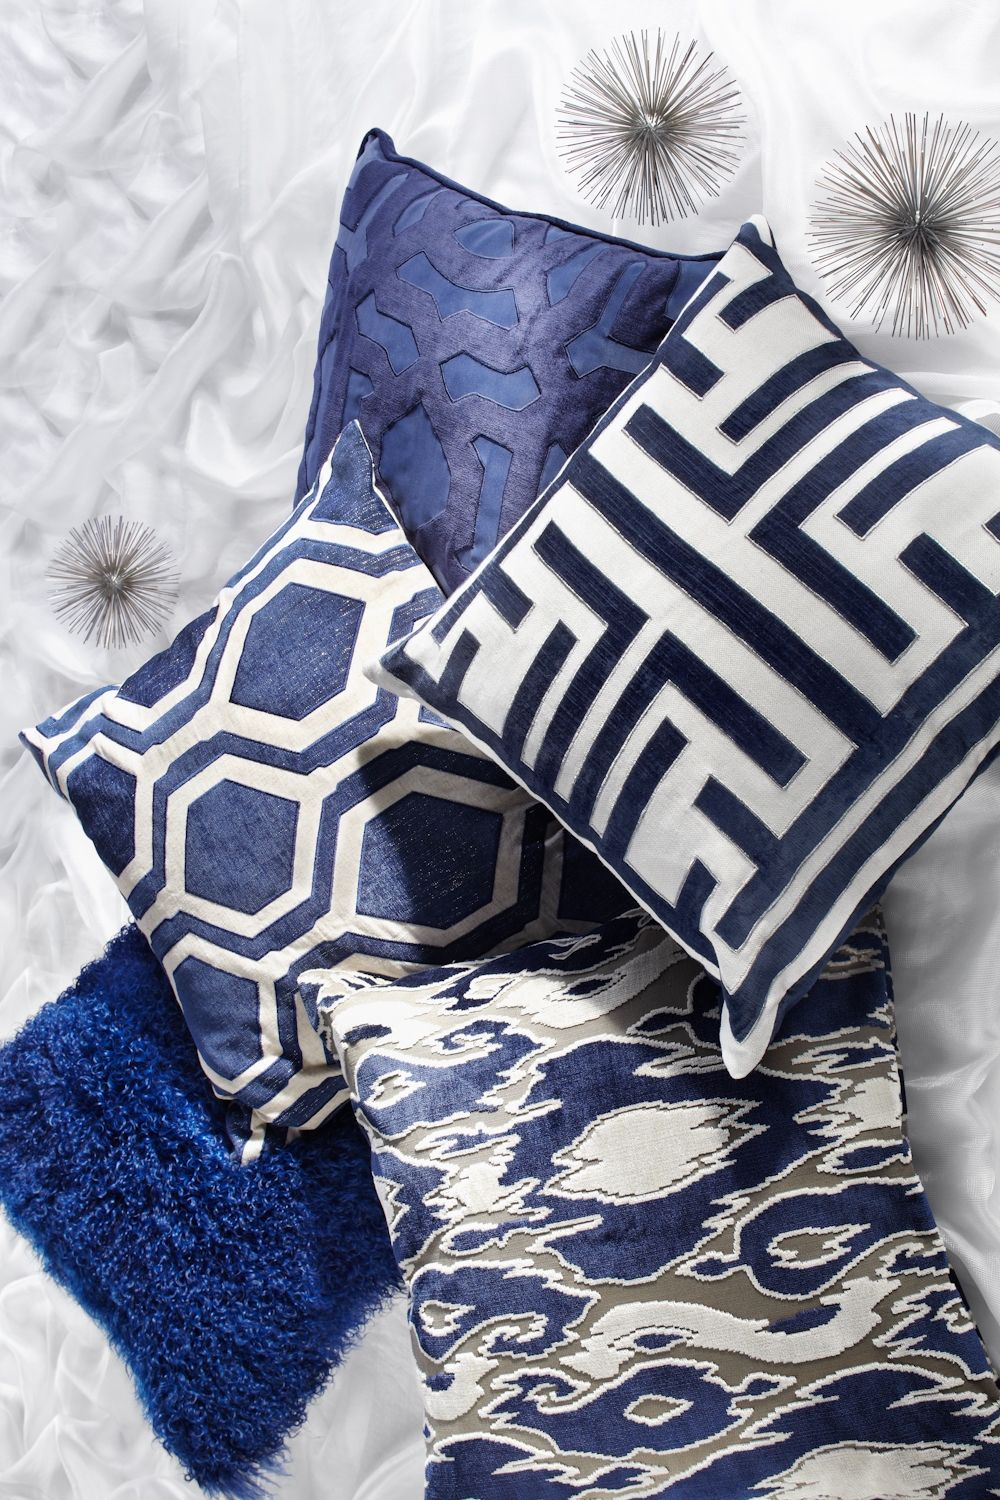 Blue And White Pillows Part - 22: True Blue, Blue Pillows, Blue Patterned Pillows, Blue Geometric Pillows,  Blue And White Pillows